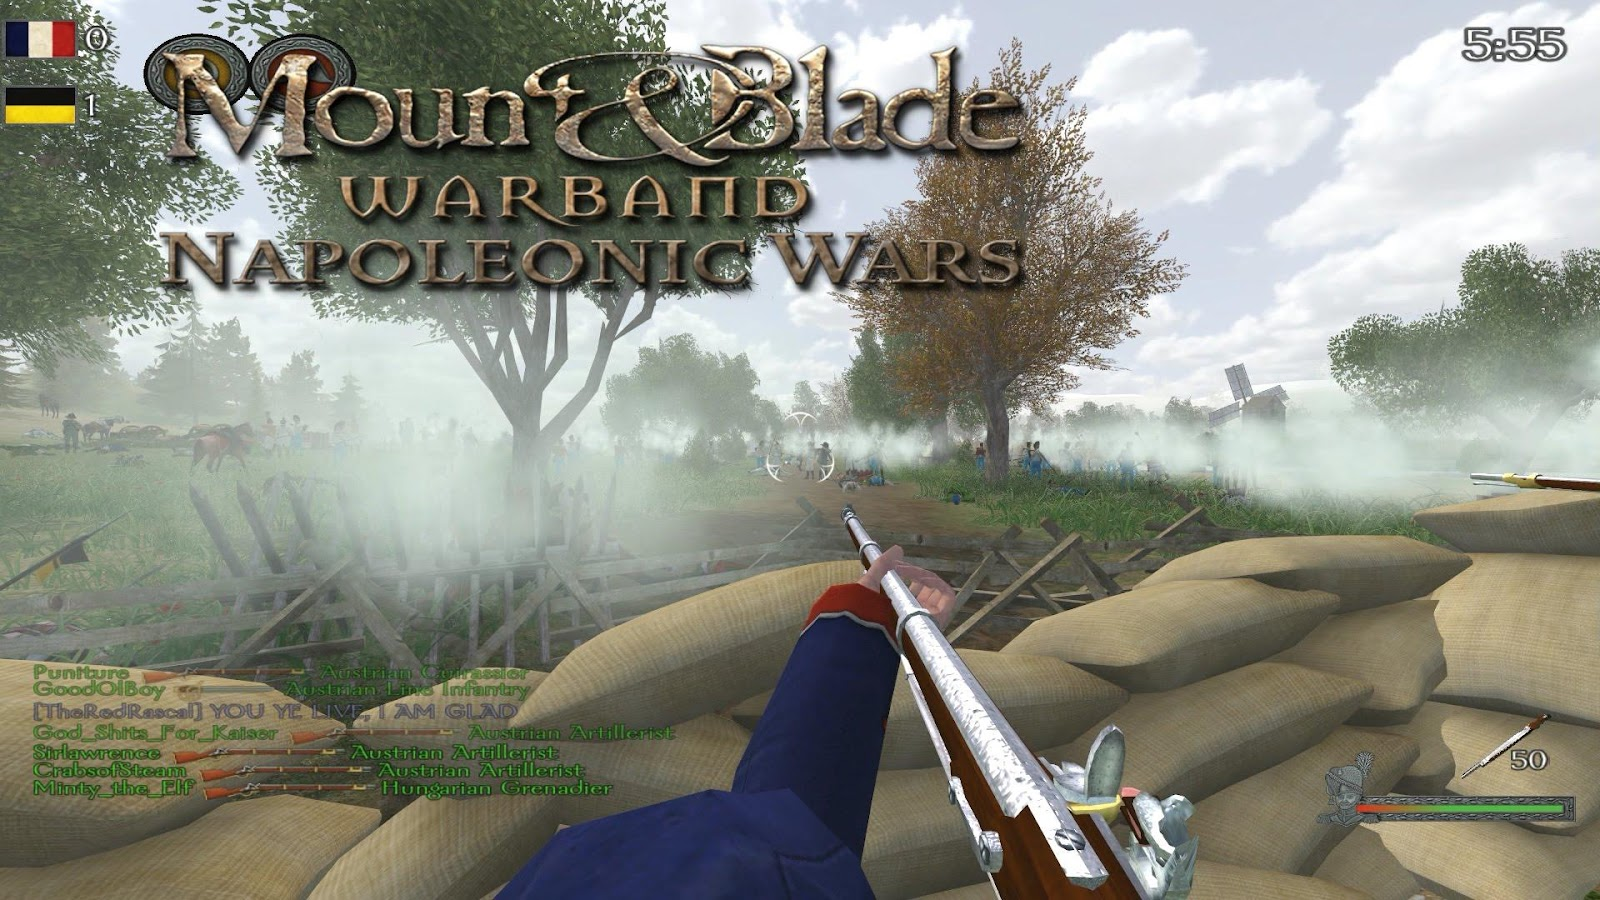 ../Desktop/defending-the-town-mount-and-blade-warband-napoleonic-wars-gameplay-youtube-thumbnail.jpg